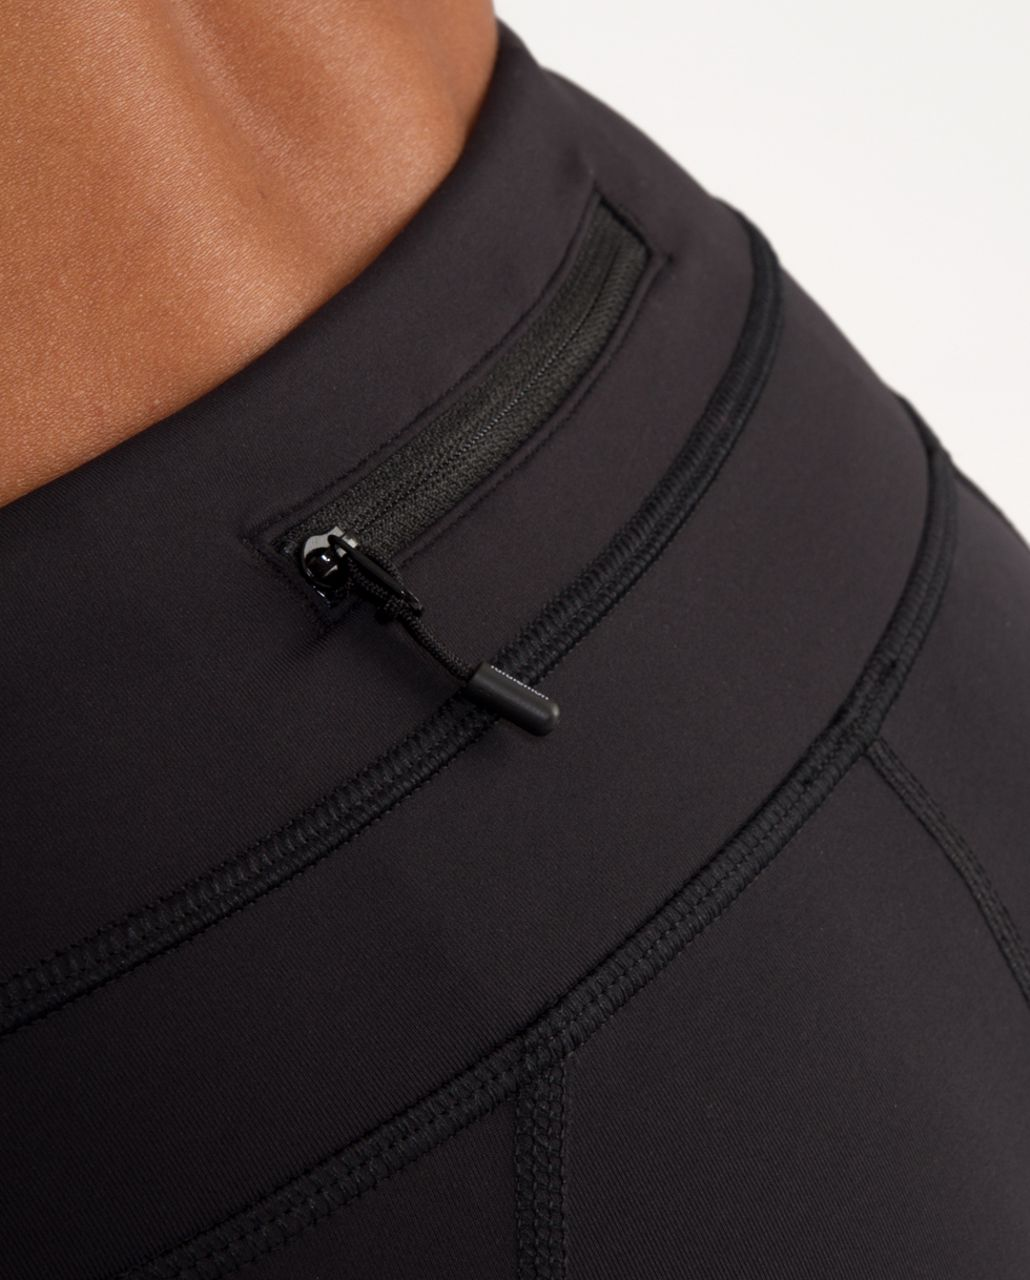 Lululemon Run: Inspire Crop II - Black (First Release)